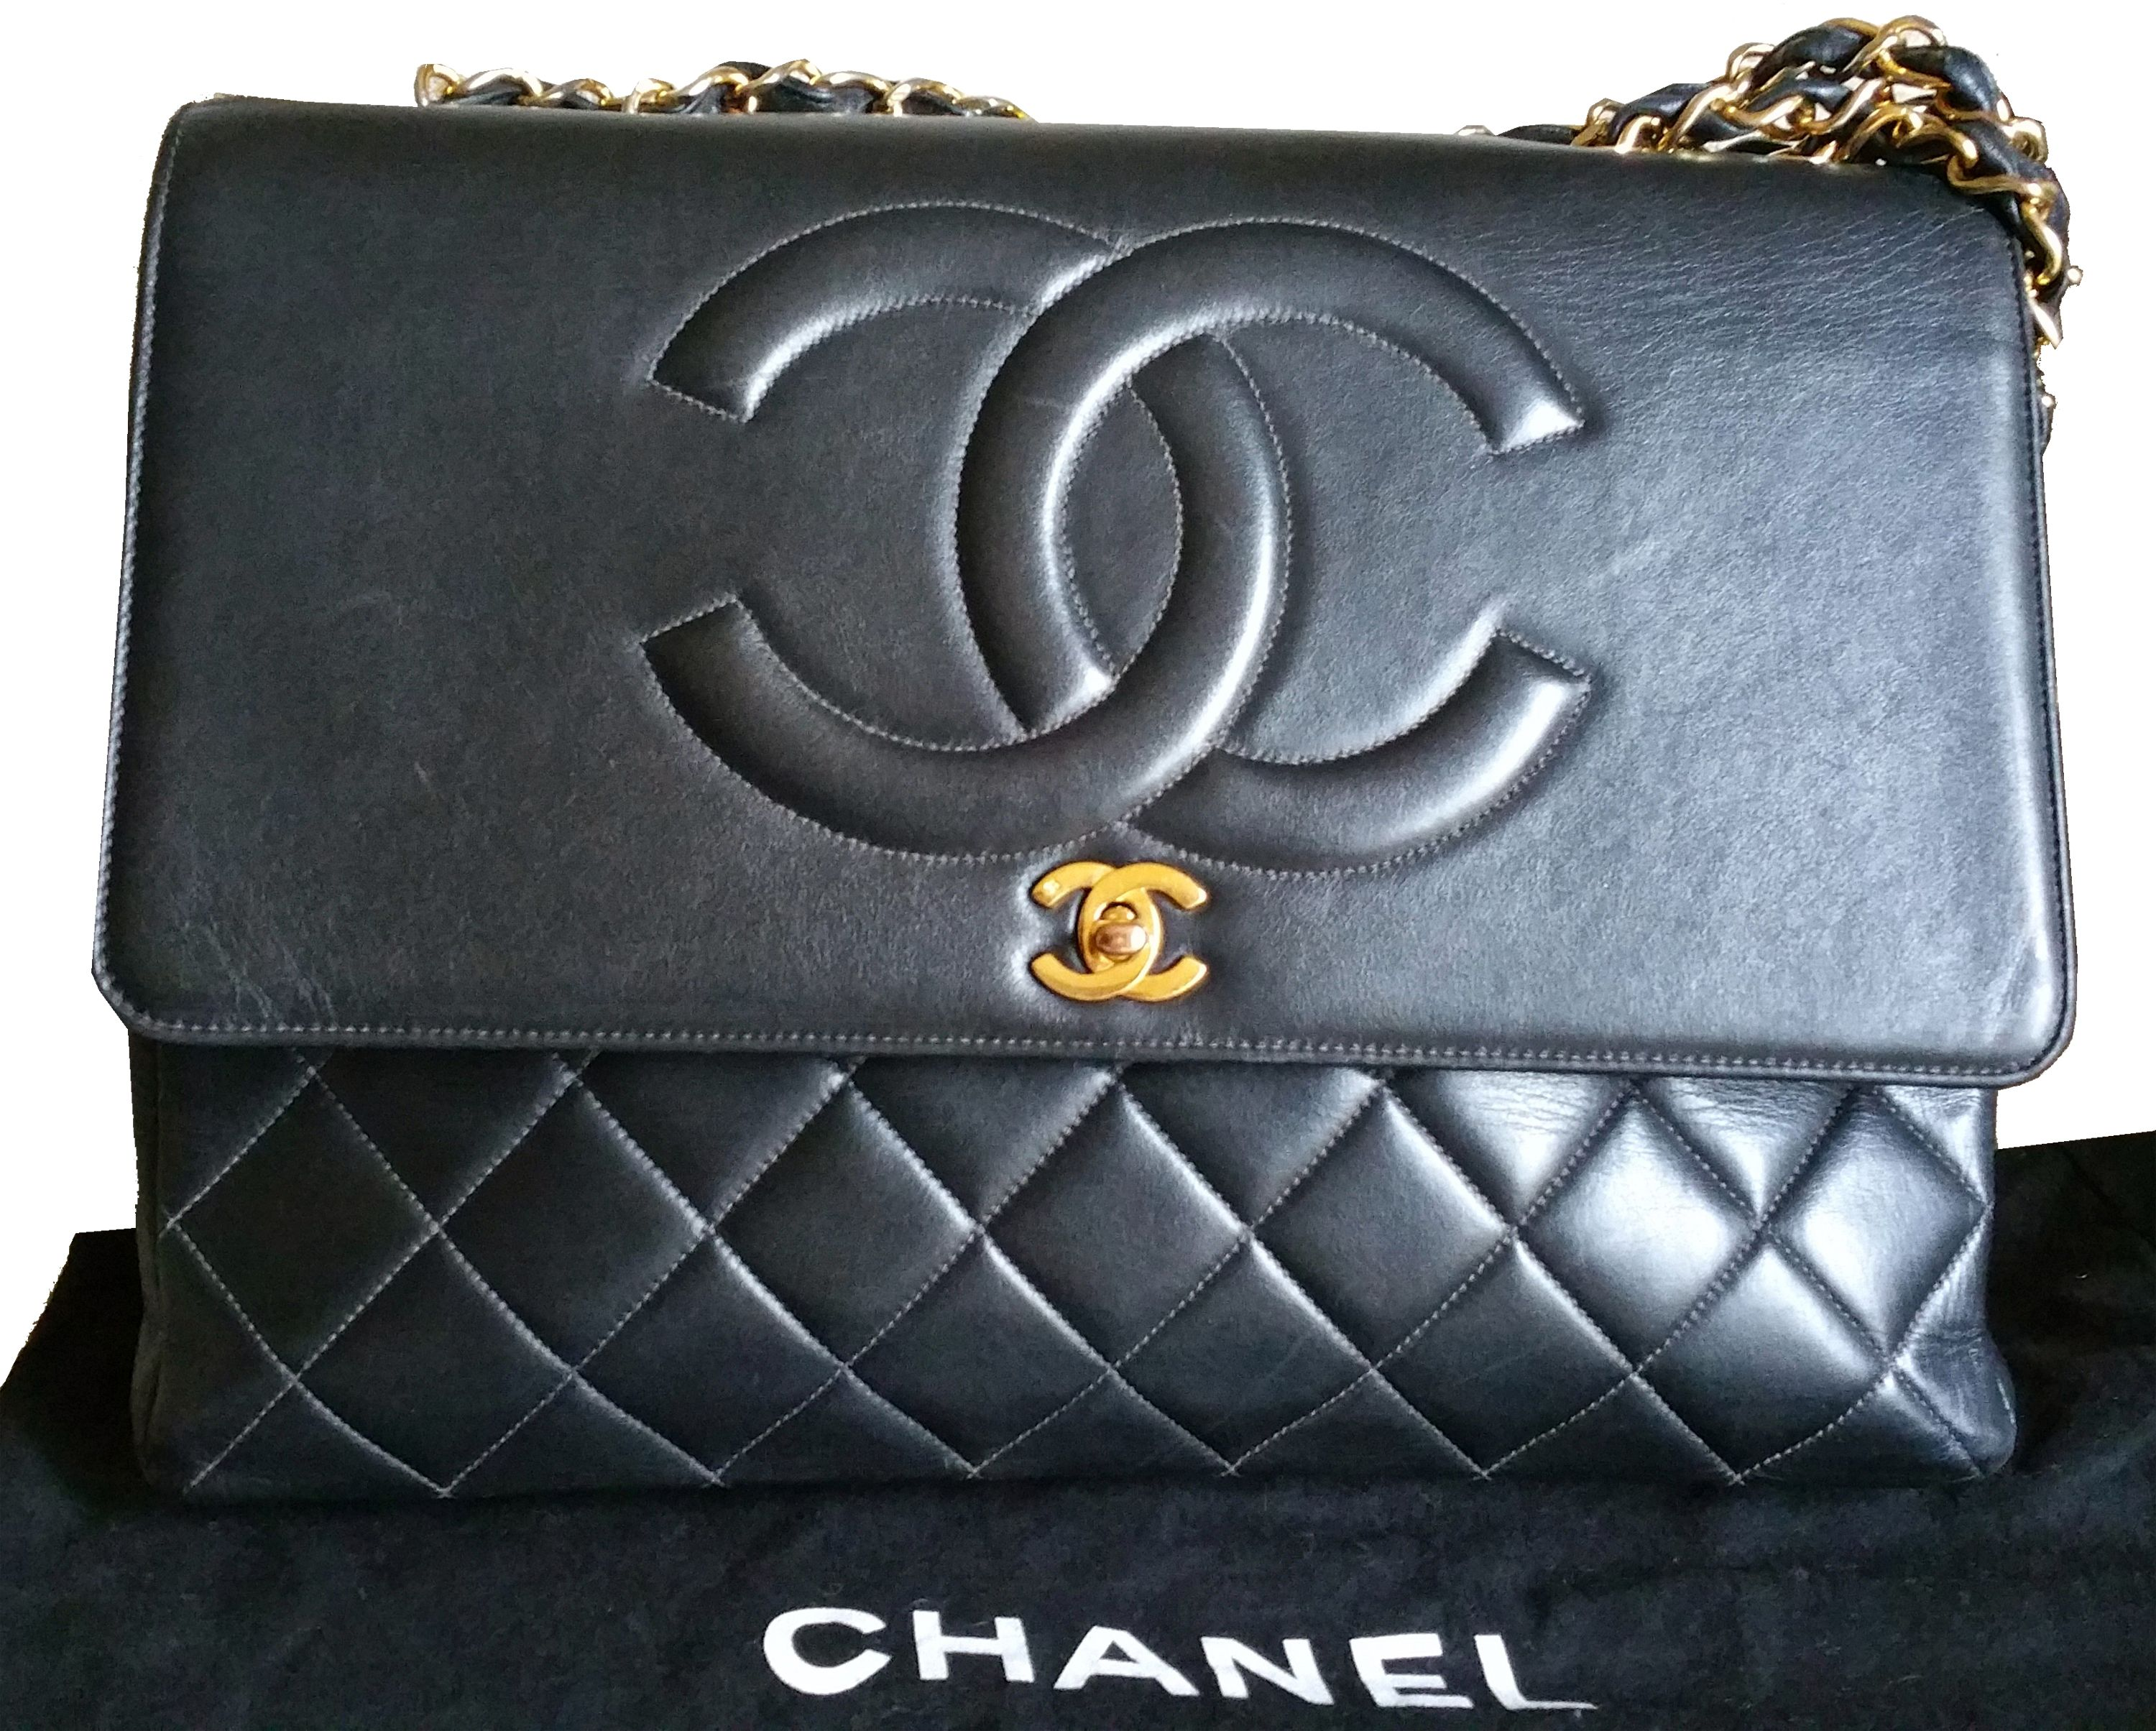 Authentic Chanel Rare Jumbo CC Quilted Maxi Lambskin Double Chain Bag  Made  in France  249xxxxx  Comes with dustbag -Approximately 13.25